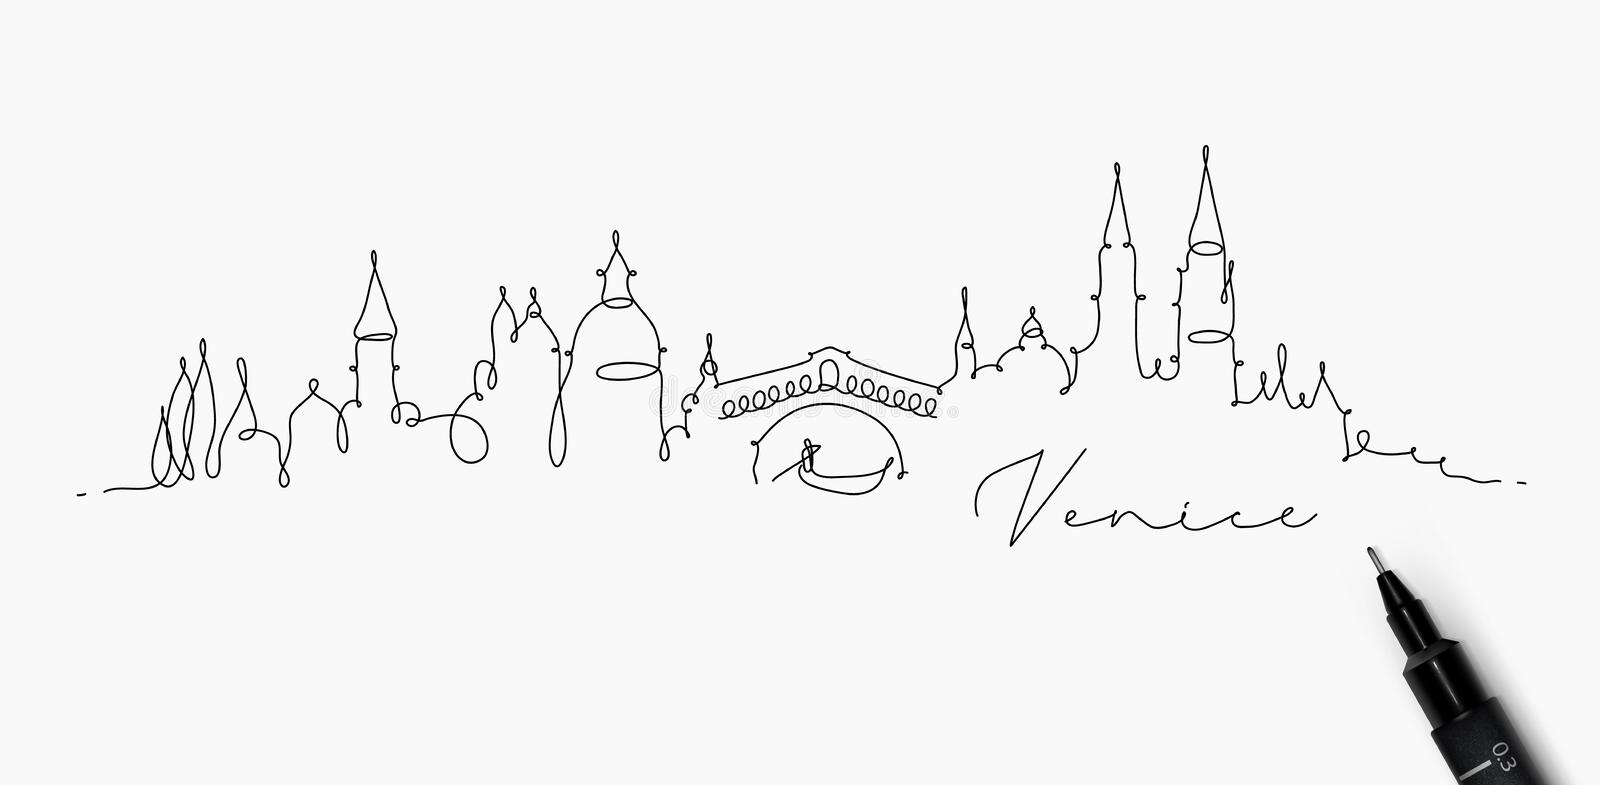 Pen line silhouette venice. City silhouette venice in pen line style drawing with black lines on white background stock illustration